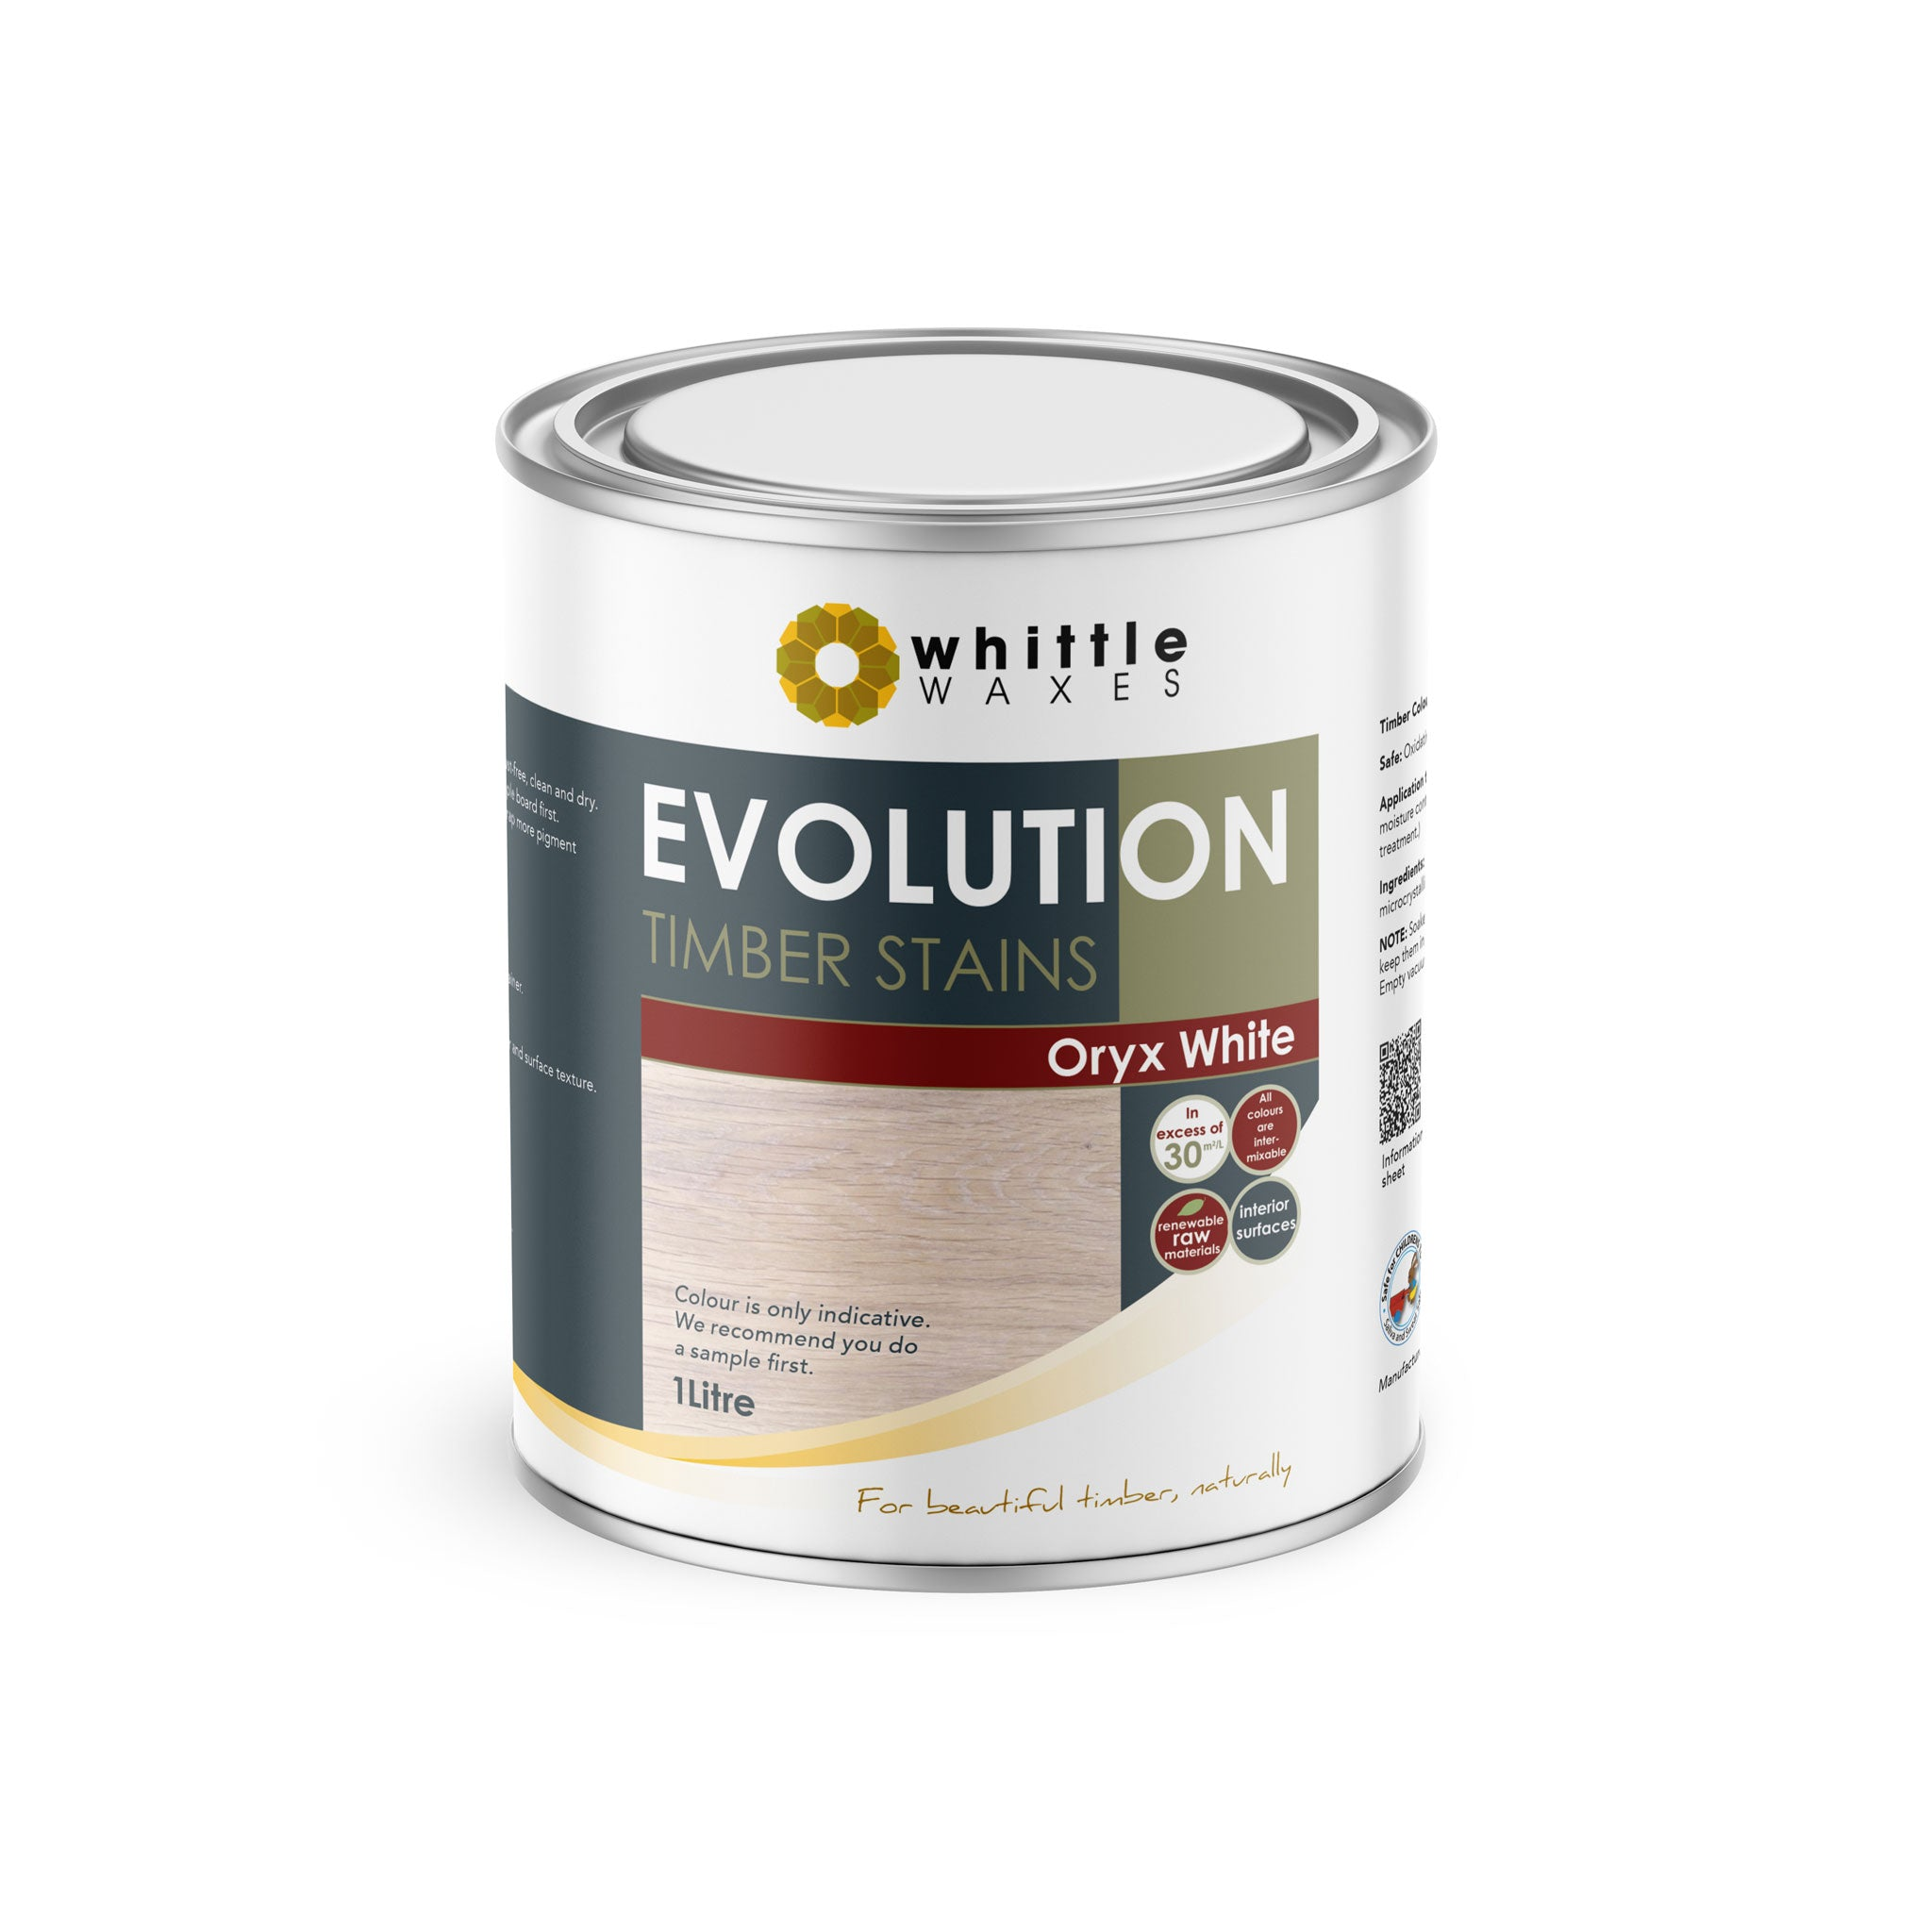 Whittle Waxes Evolution Colours (Oryx White) - quality timber stain - 1 Litre